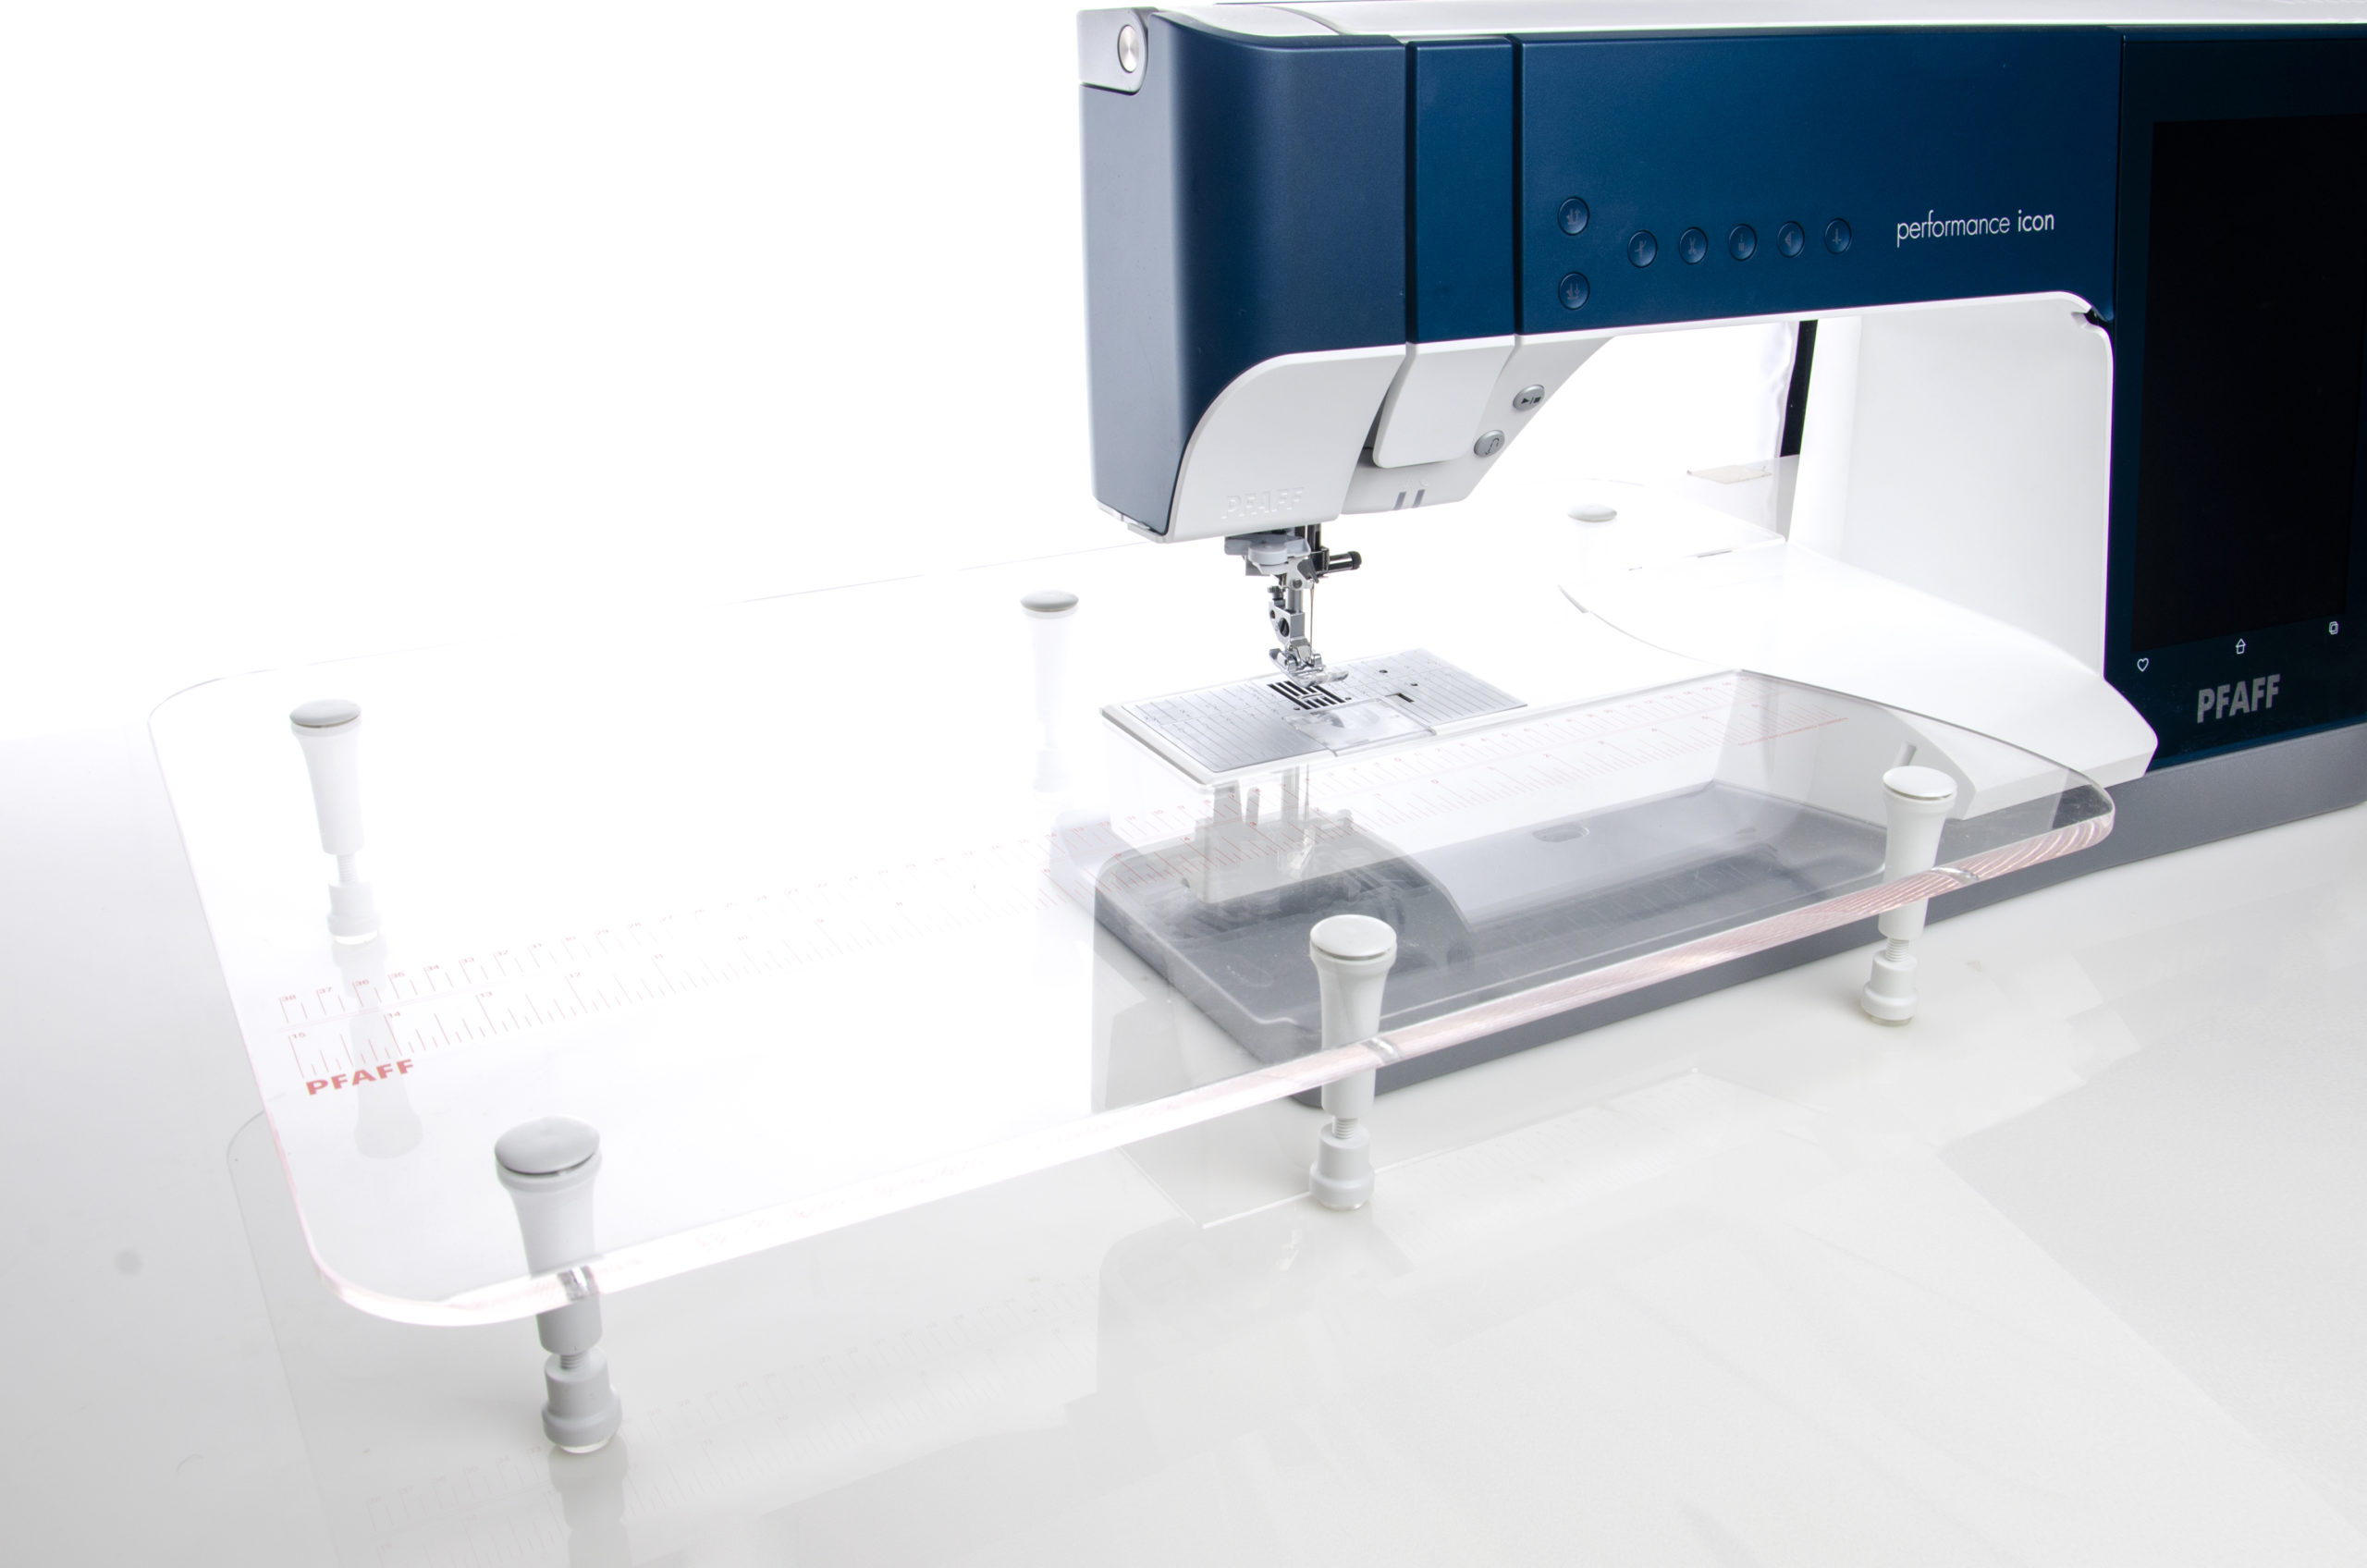 pfaff quilters table